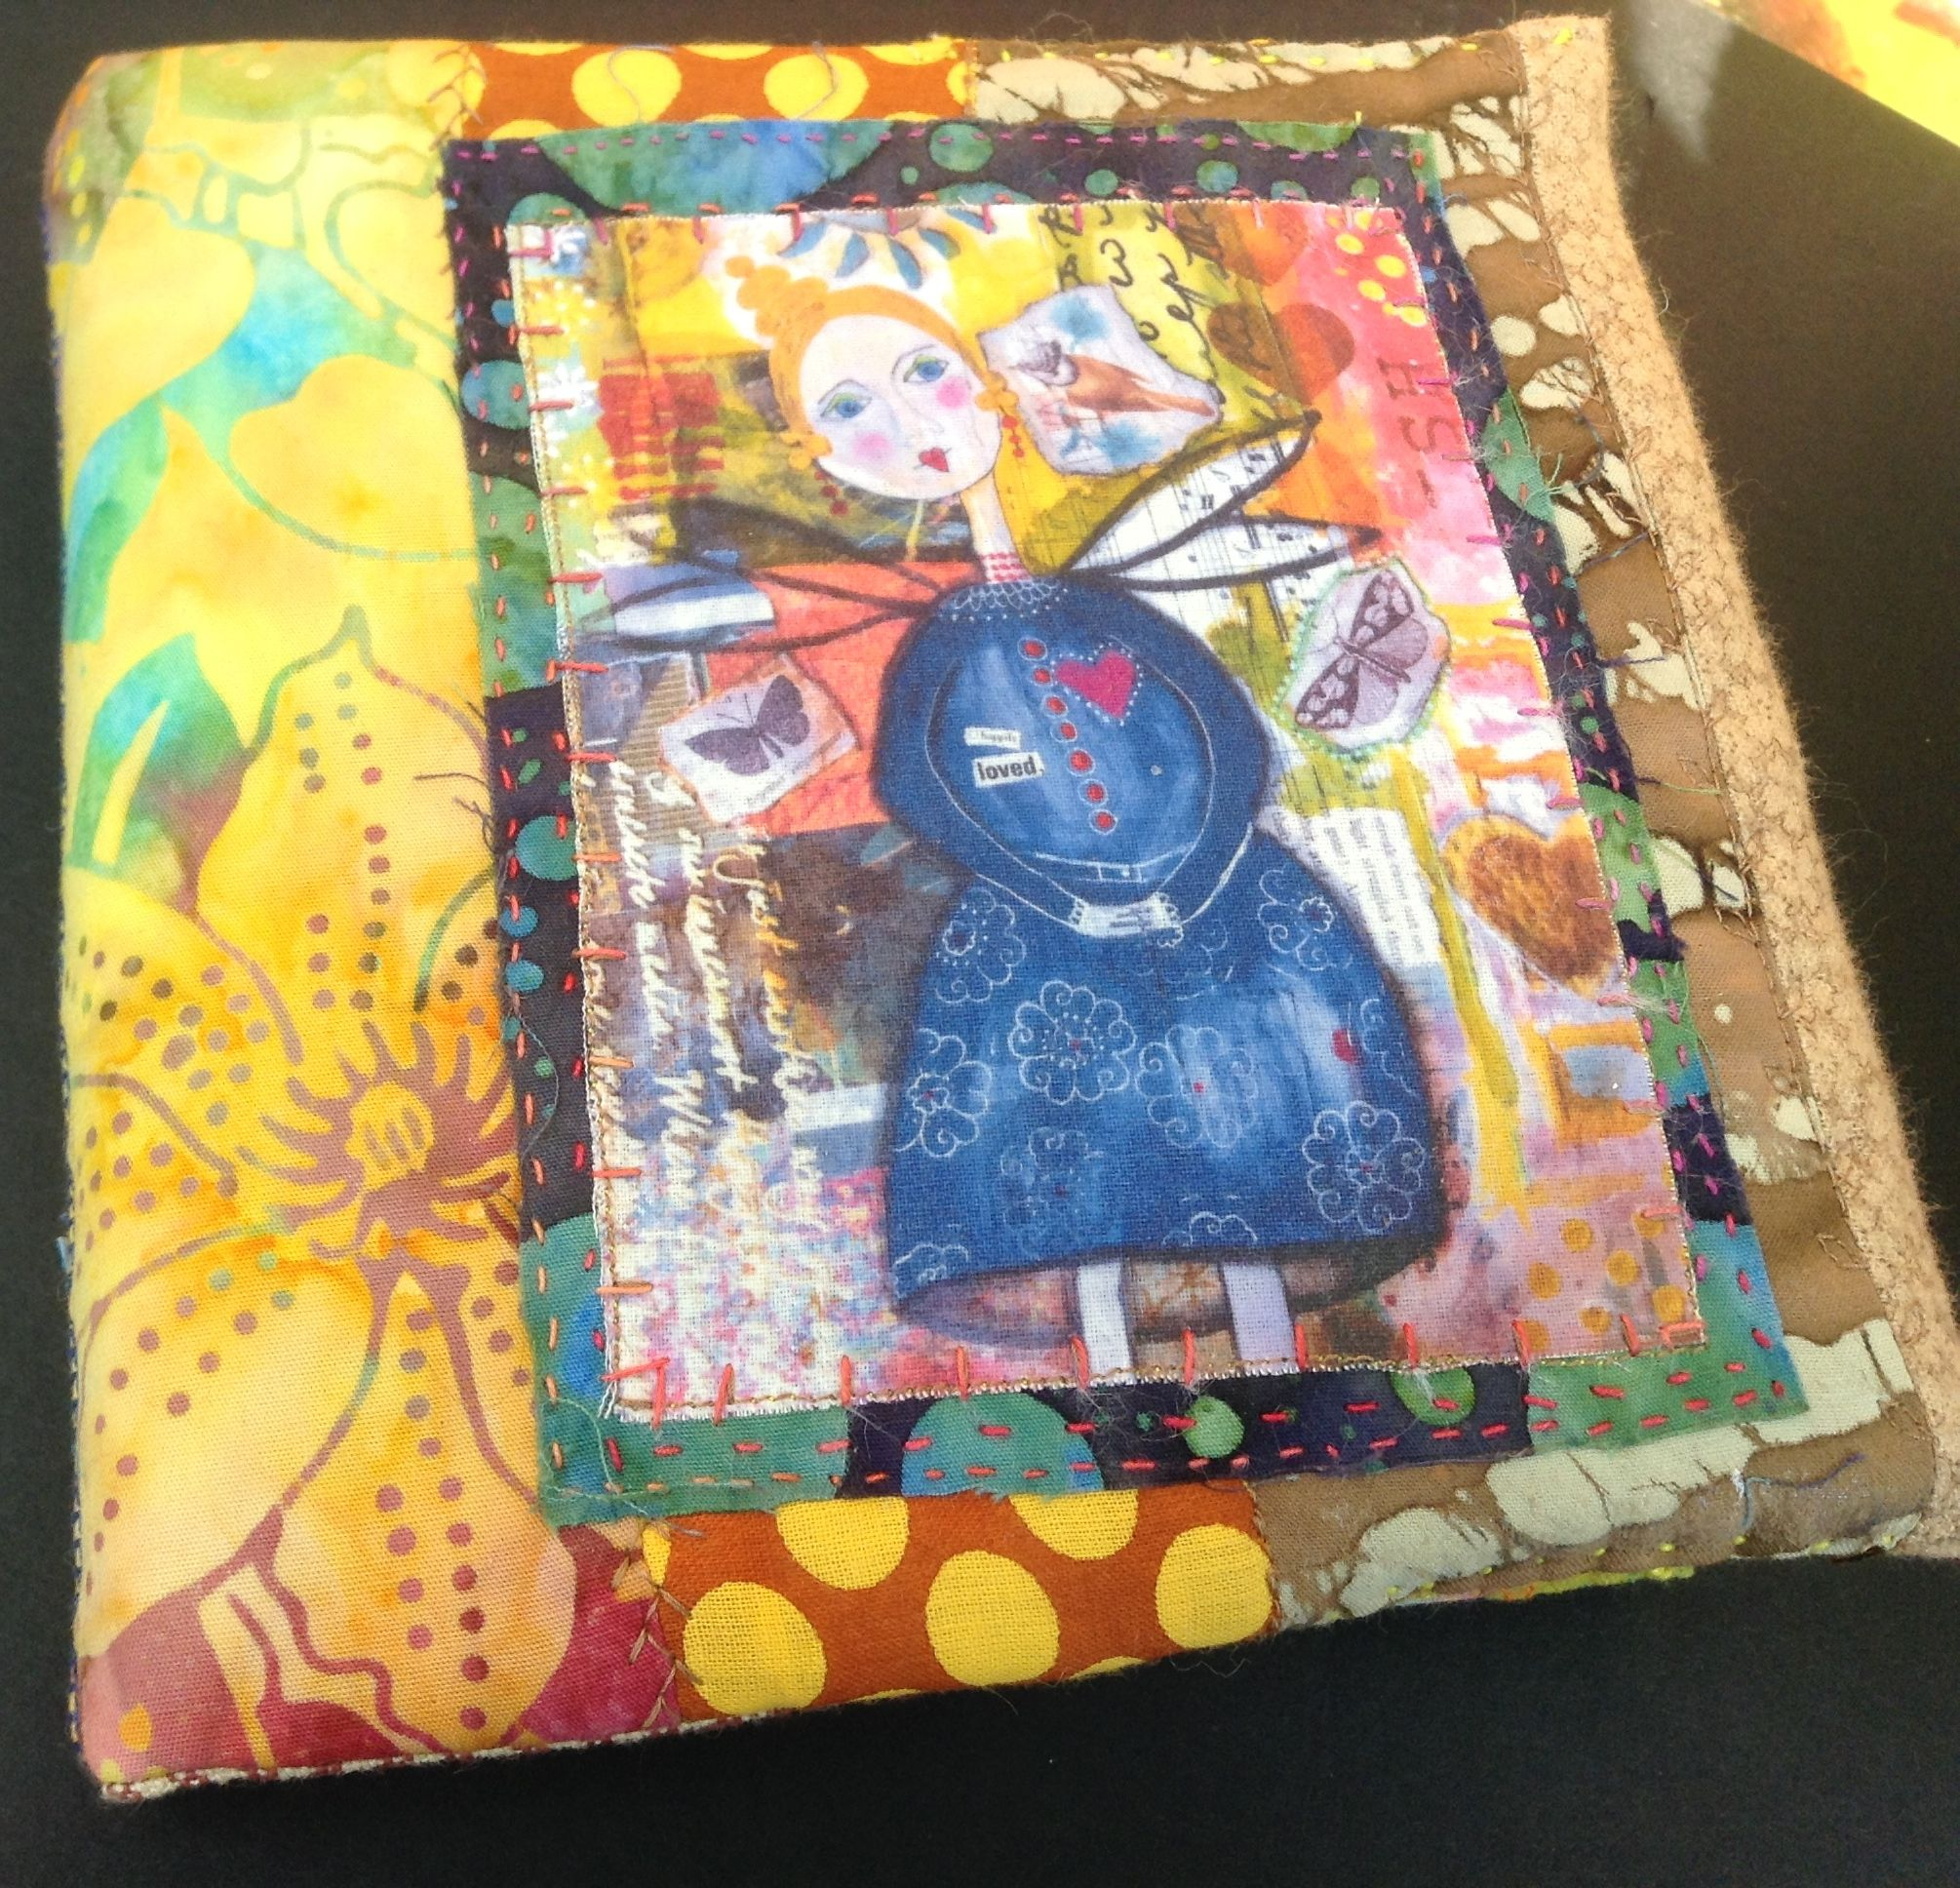 Artistbooks Ideas: Book Cover. The Naive Angel Is A Transfer Image Of One Of